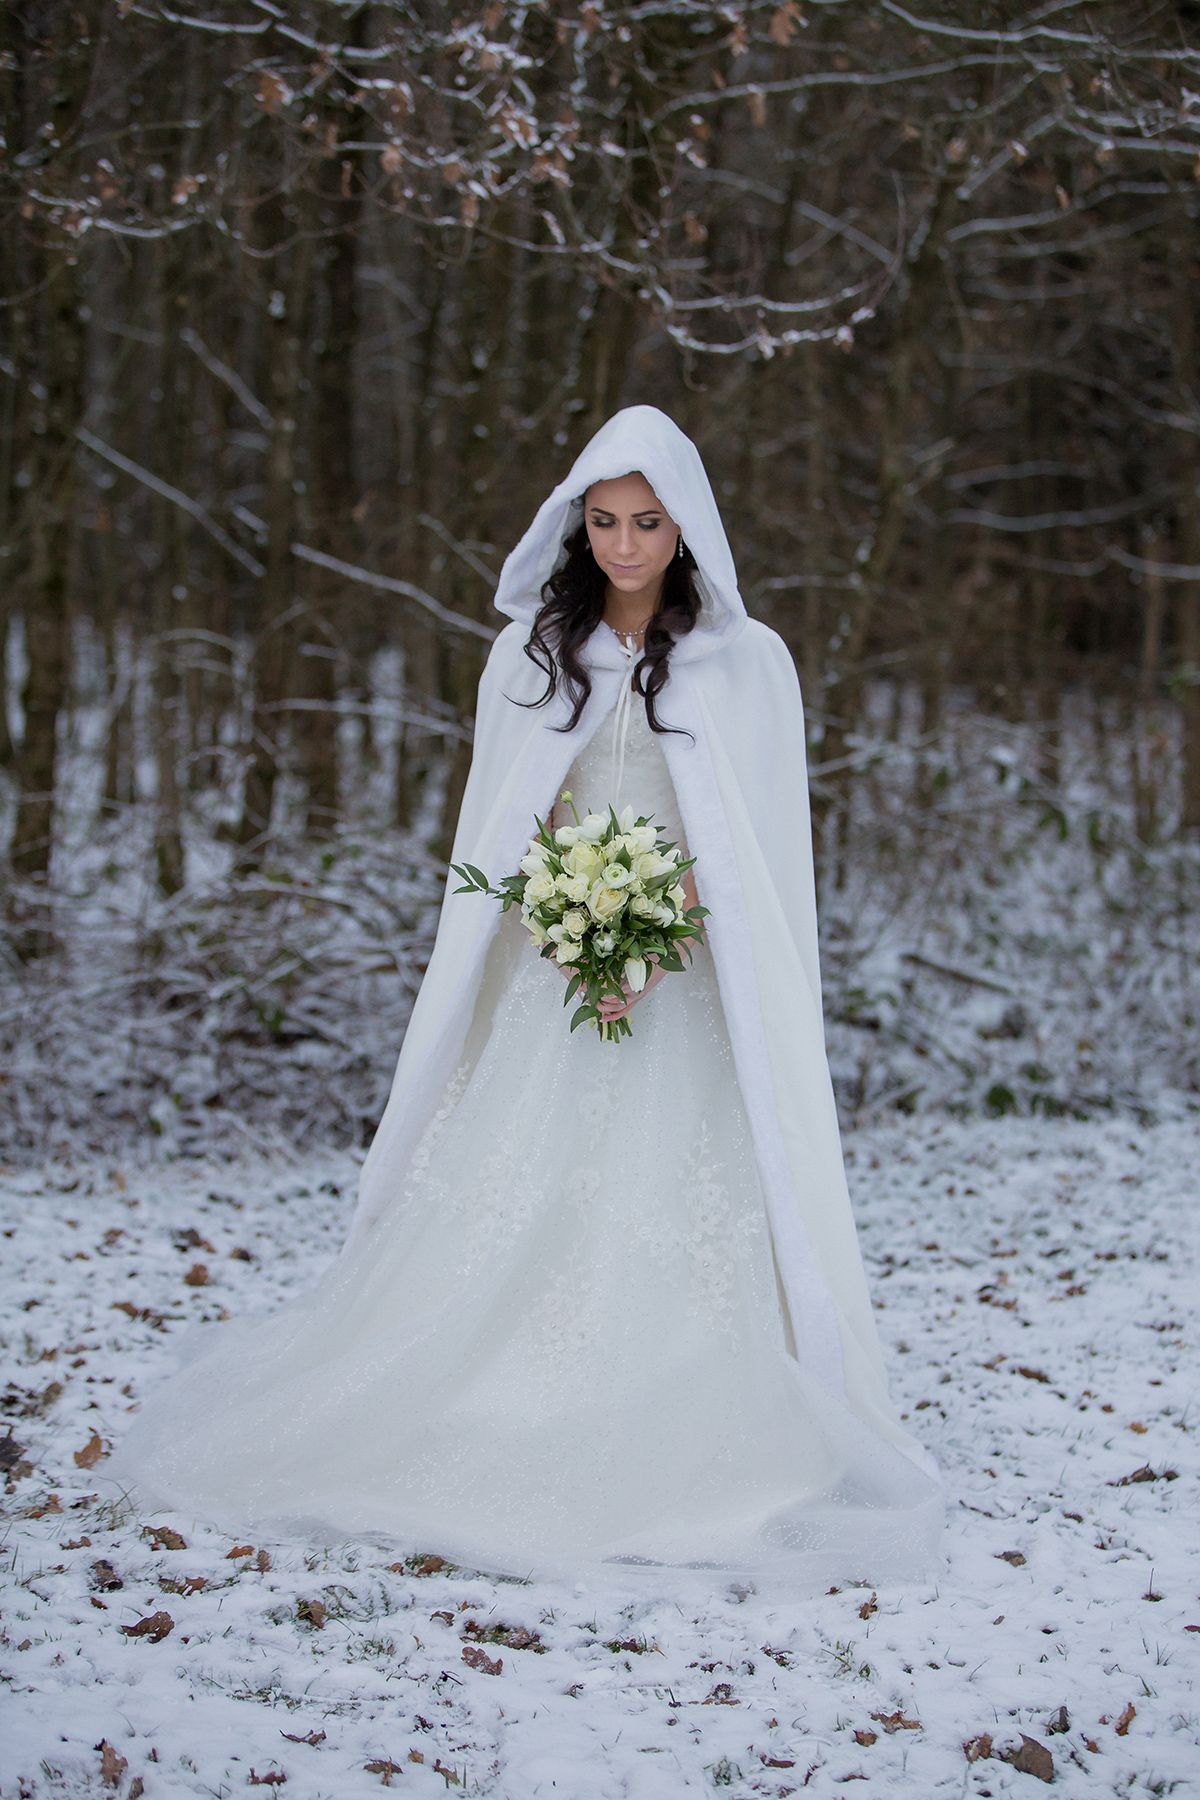 Natural Rustic Winter Wedding Inspiration From Germany Winter Wedding Dress Snow Wedding Winter Wedding Inspiration [ 1800 x 1200 Pixel ]